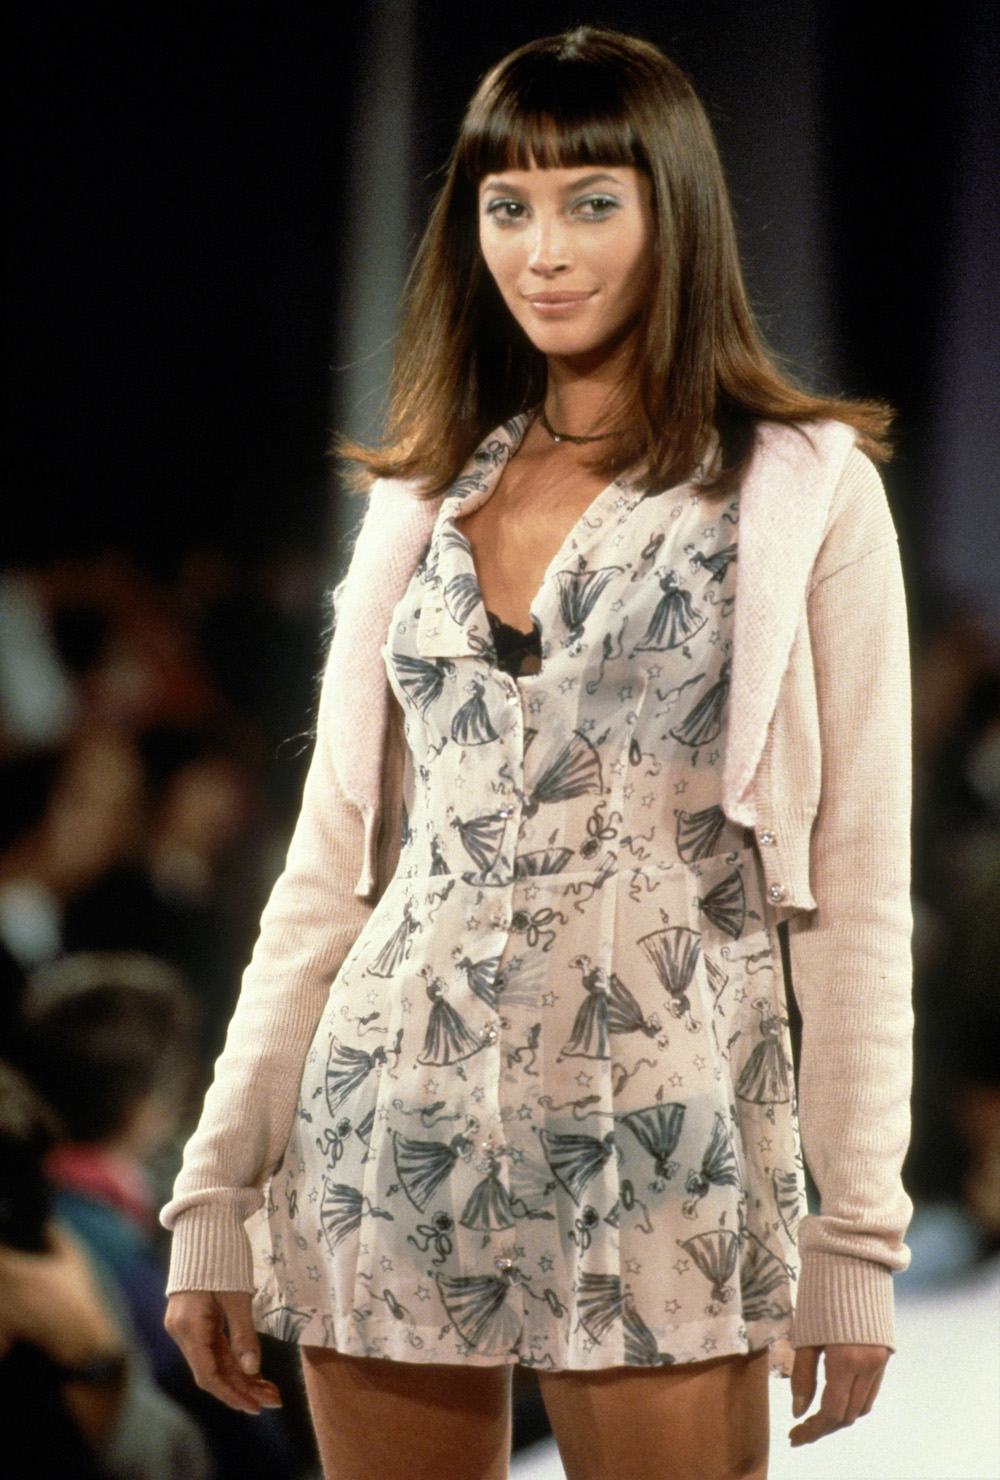 NEW YORK, NY - CIRCA 1993: Christy Turlington at the Anna Sui Spring 1994 show circa 1993 in New York City. (Photo by Images Press/IMAGES/Getty Images)